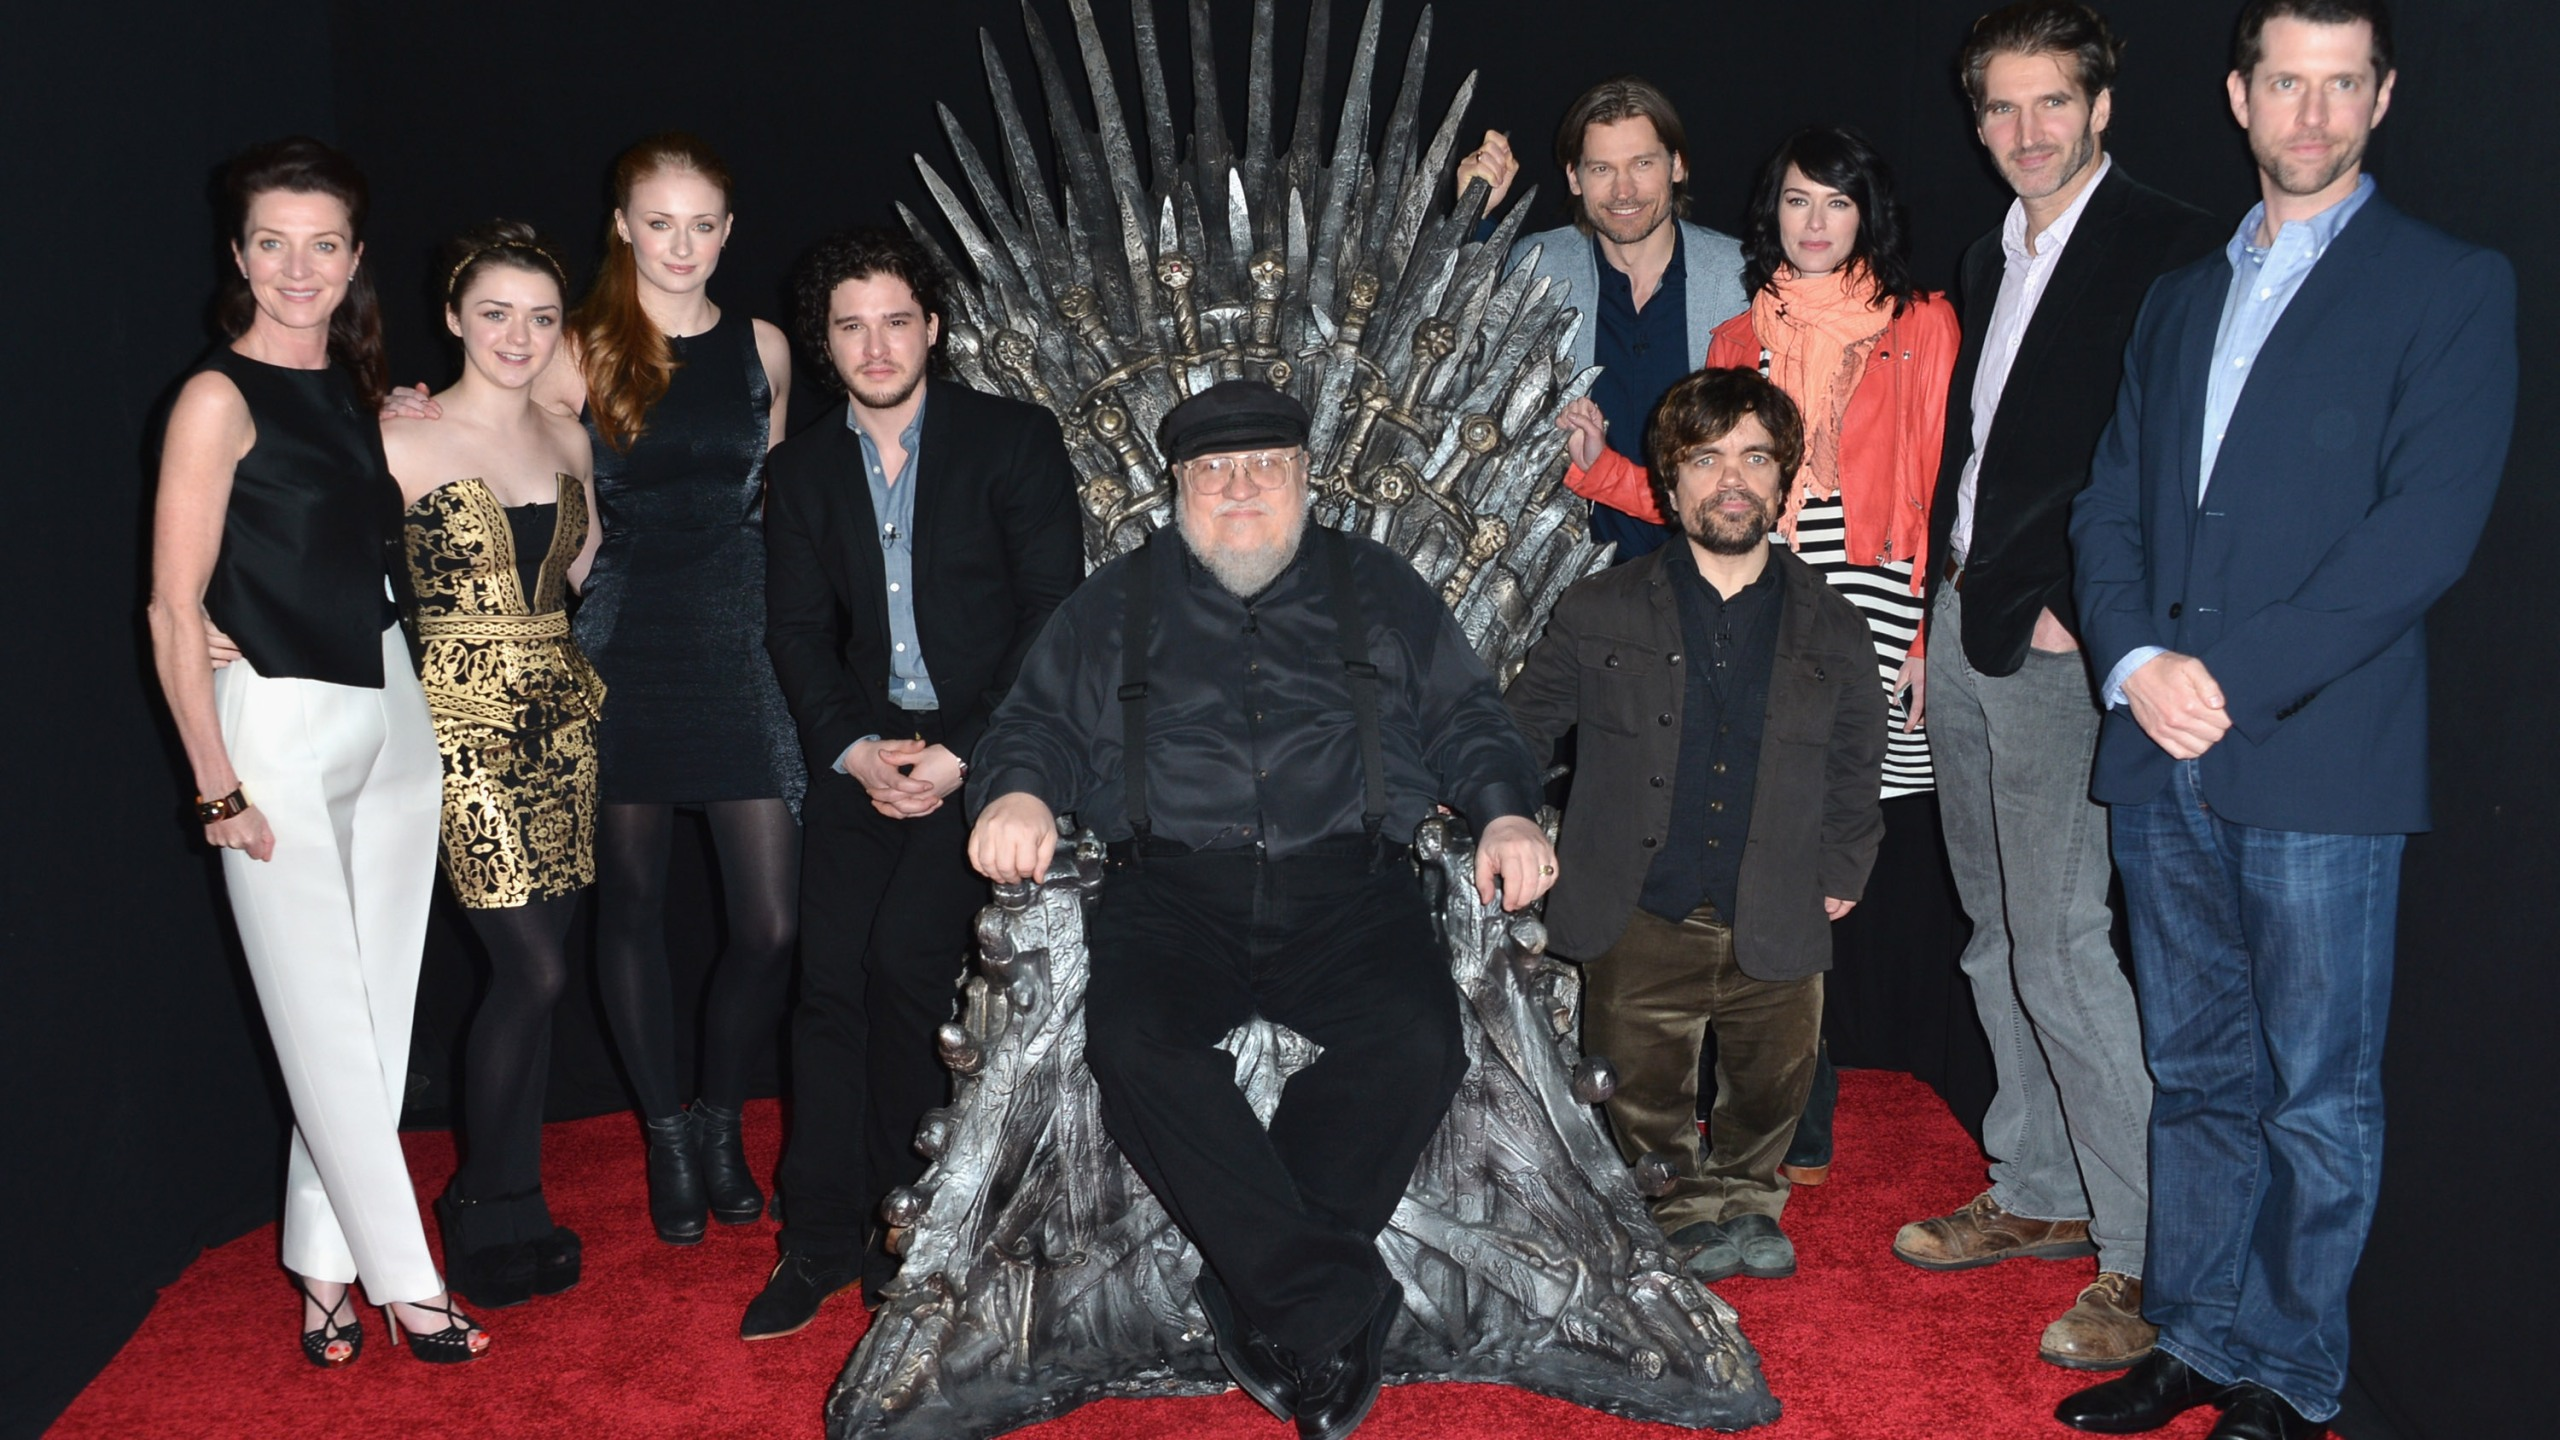 "Actors Michelle Fairley, Maisie Williams, Sophie Turner, Kit Harington, executive producer George R.R. Martin, actors Nikolaj Coster-Waldau, Peter Dinklage, Lena Headey, co-creator/executive producer David Banioff and co-creator/executive producer D.B. Weiss attend The Academy of Television Arts & Sciences' Presents An Evening With ""Game of Thrones"" at TCL Chinese Theatre on March 19, 2013. (Credit: Alberto E. Rodriguez/Getty Images)"